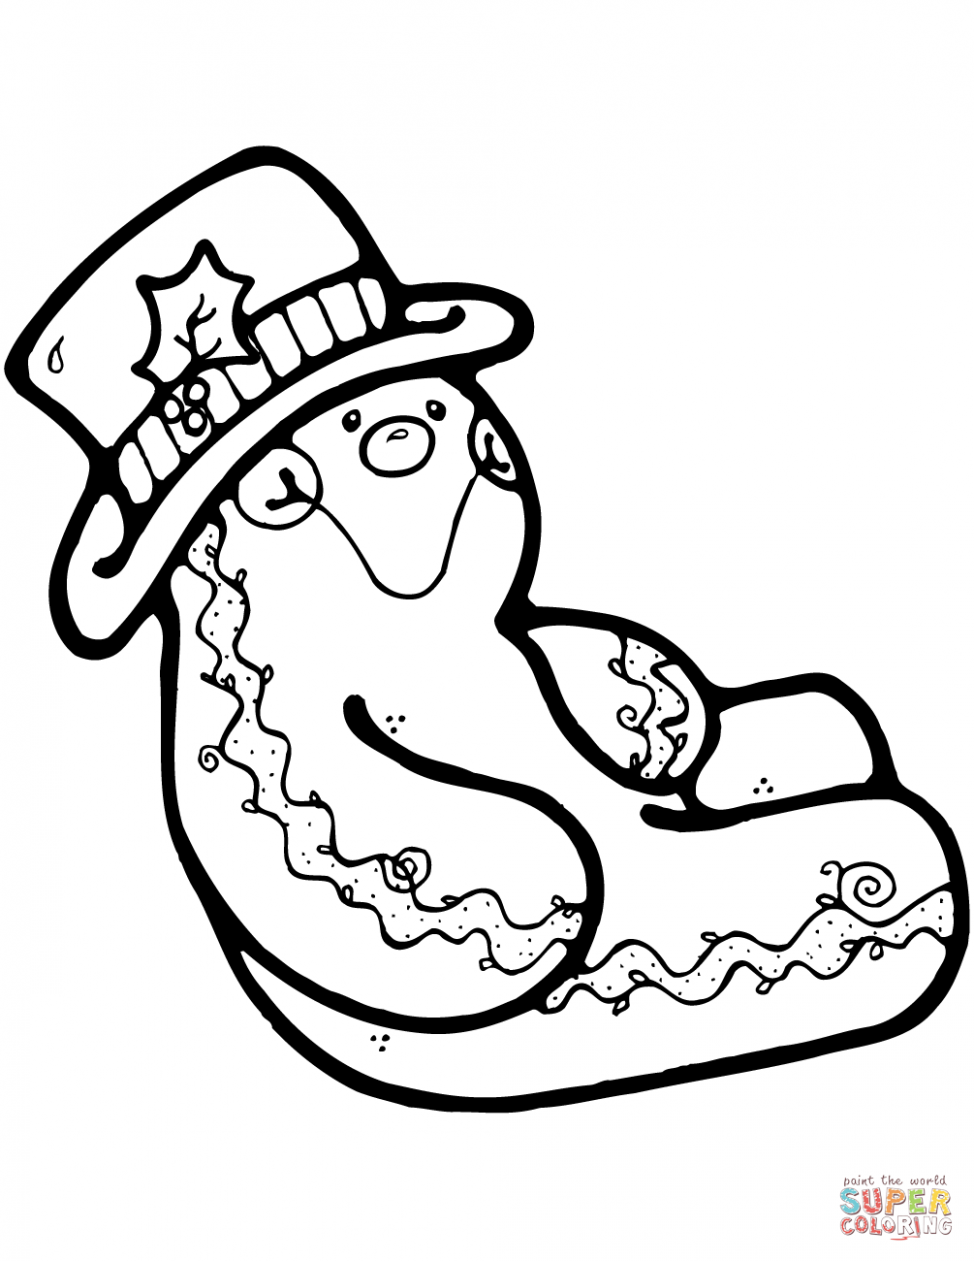 Christmas Gingerbread coloring pages | Free Coloring Pages - Christmas Coloring Gingerbread Man